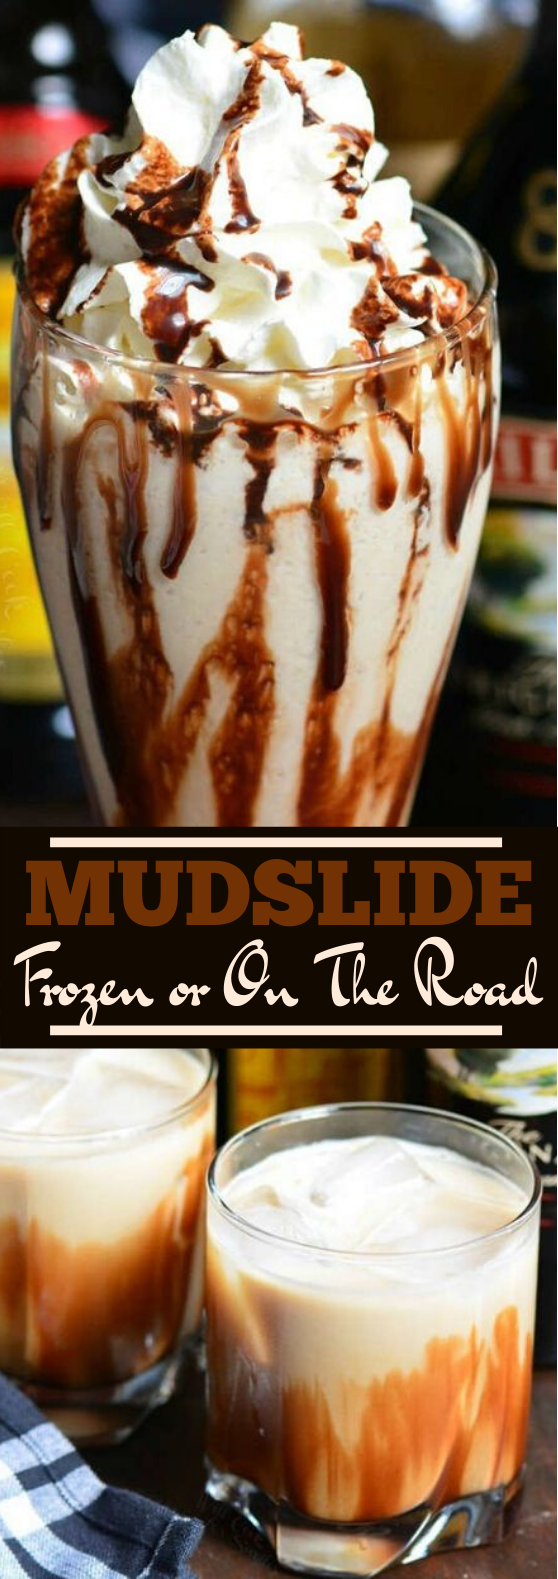 MUDSLIDES TWO WAYS #drinks #recipe #alcohol #beverages #latte